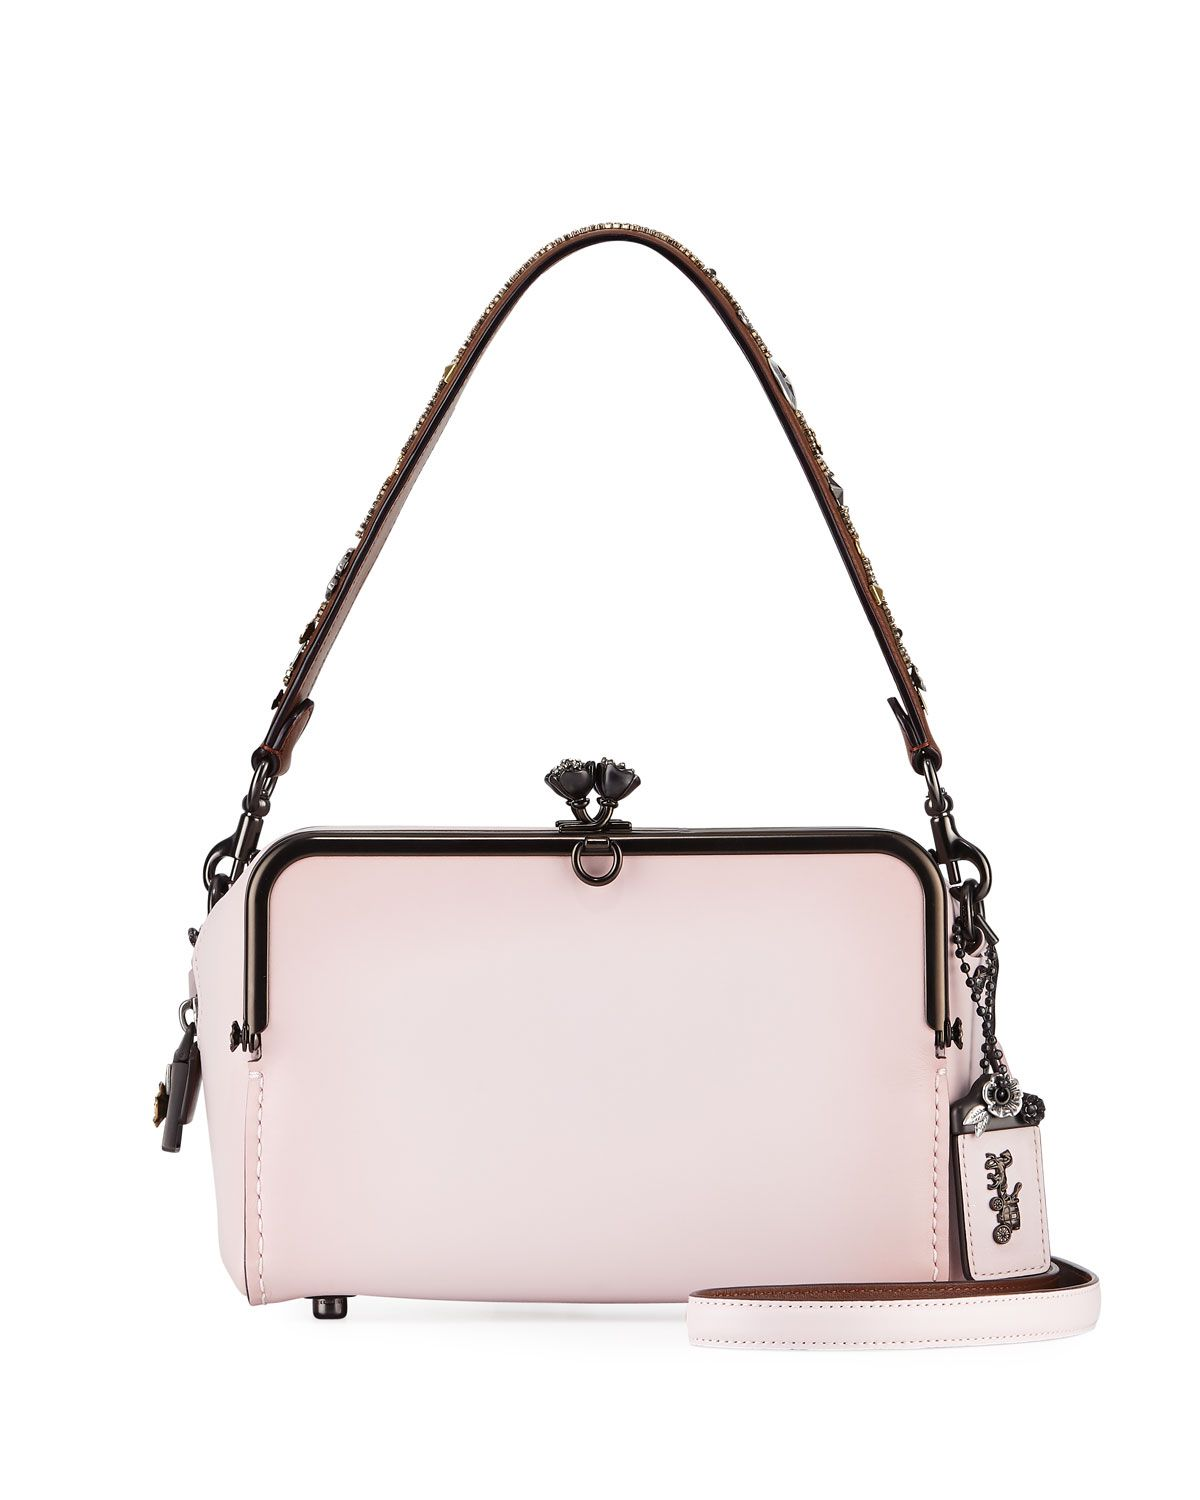 741fd3b97 COACH MAILBOX GLOSSY GLOVETAN SHOULDER BAG. #coach #bags #shoulder bags  #hand bags #leather #lining #